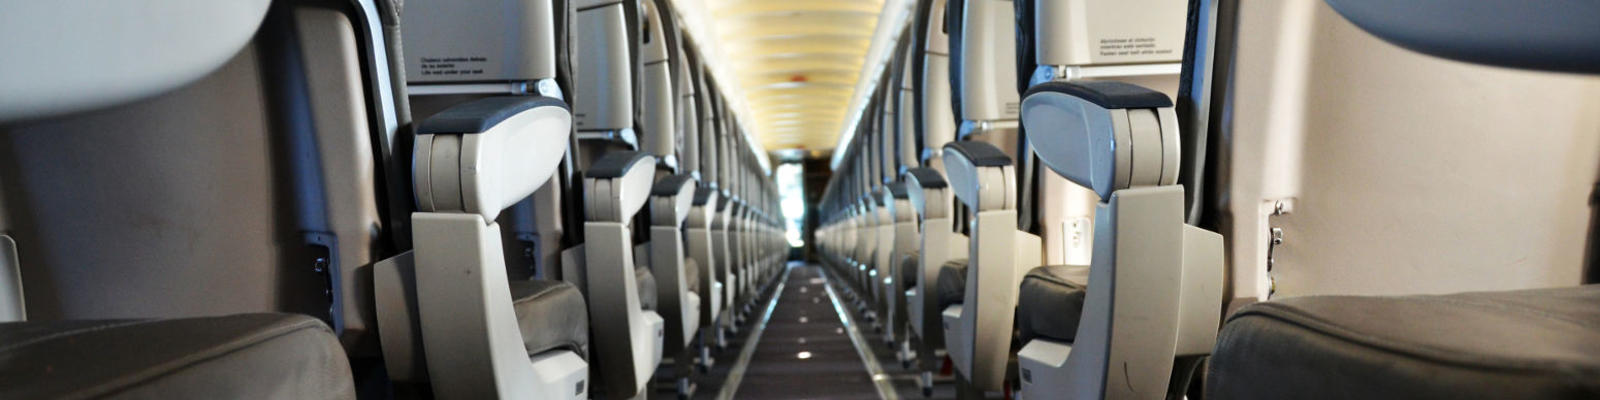 looking down centre aisle of aircraft